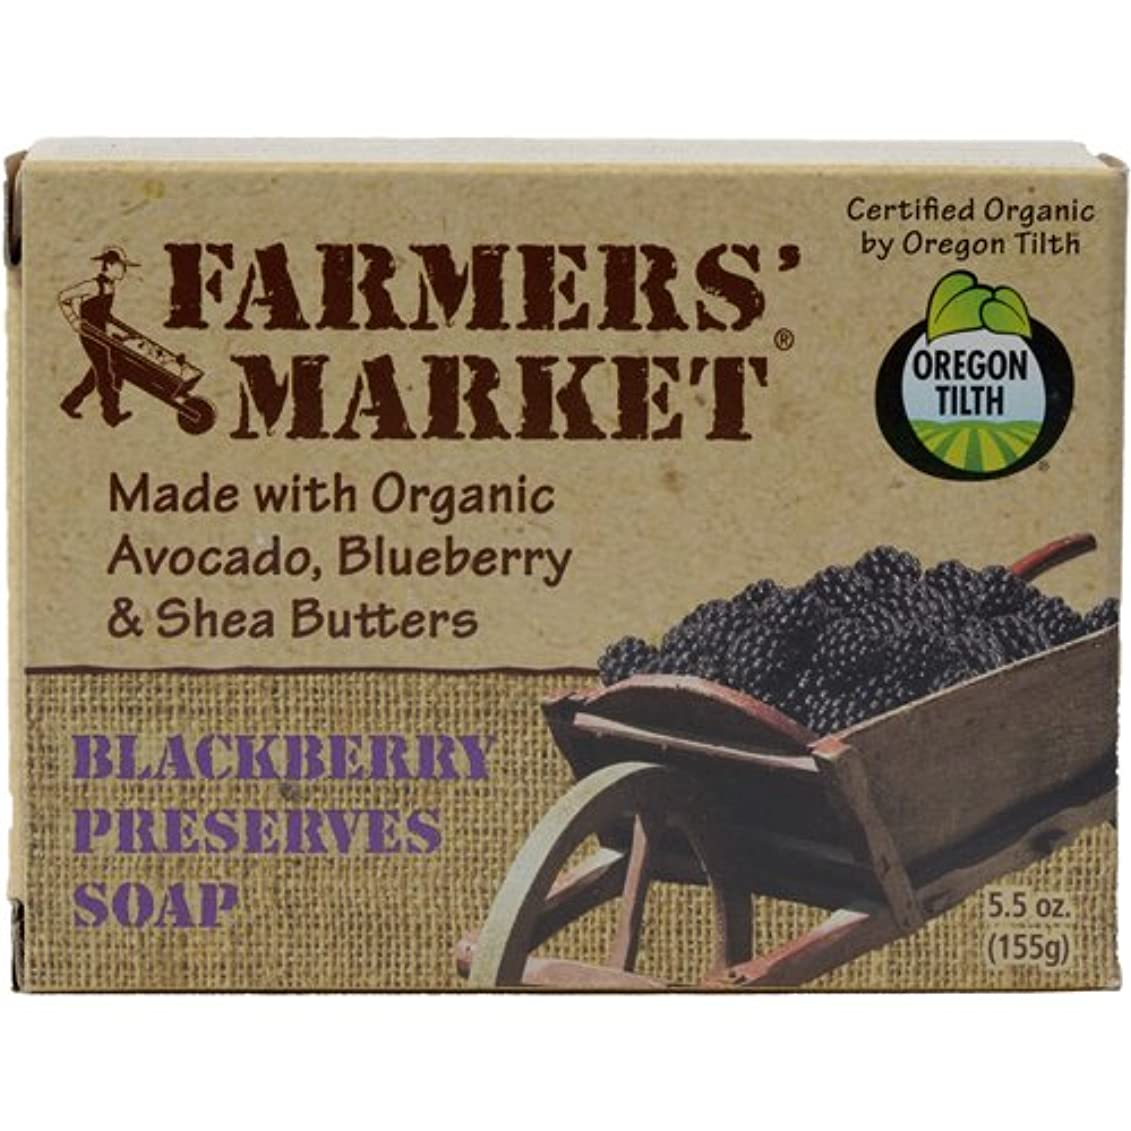 差し迫った速度なぞらえるNatural Bar Soap Blackberry Preserves - 5.5 oz by Farmer's Market